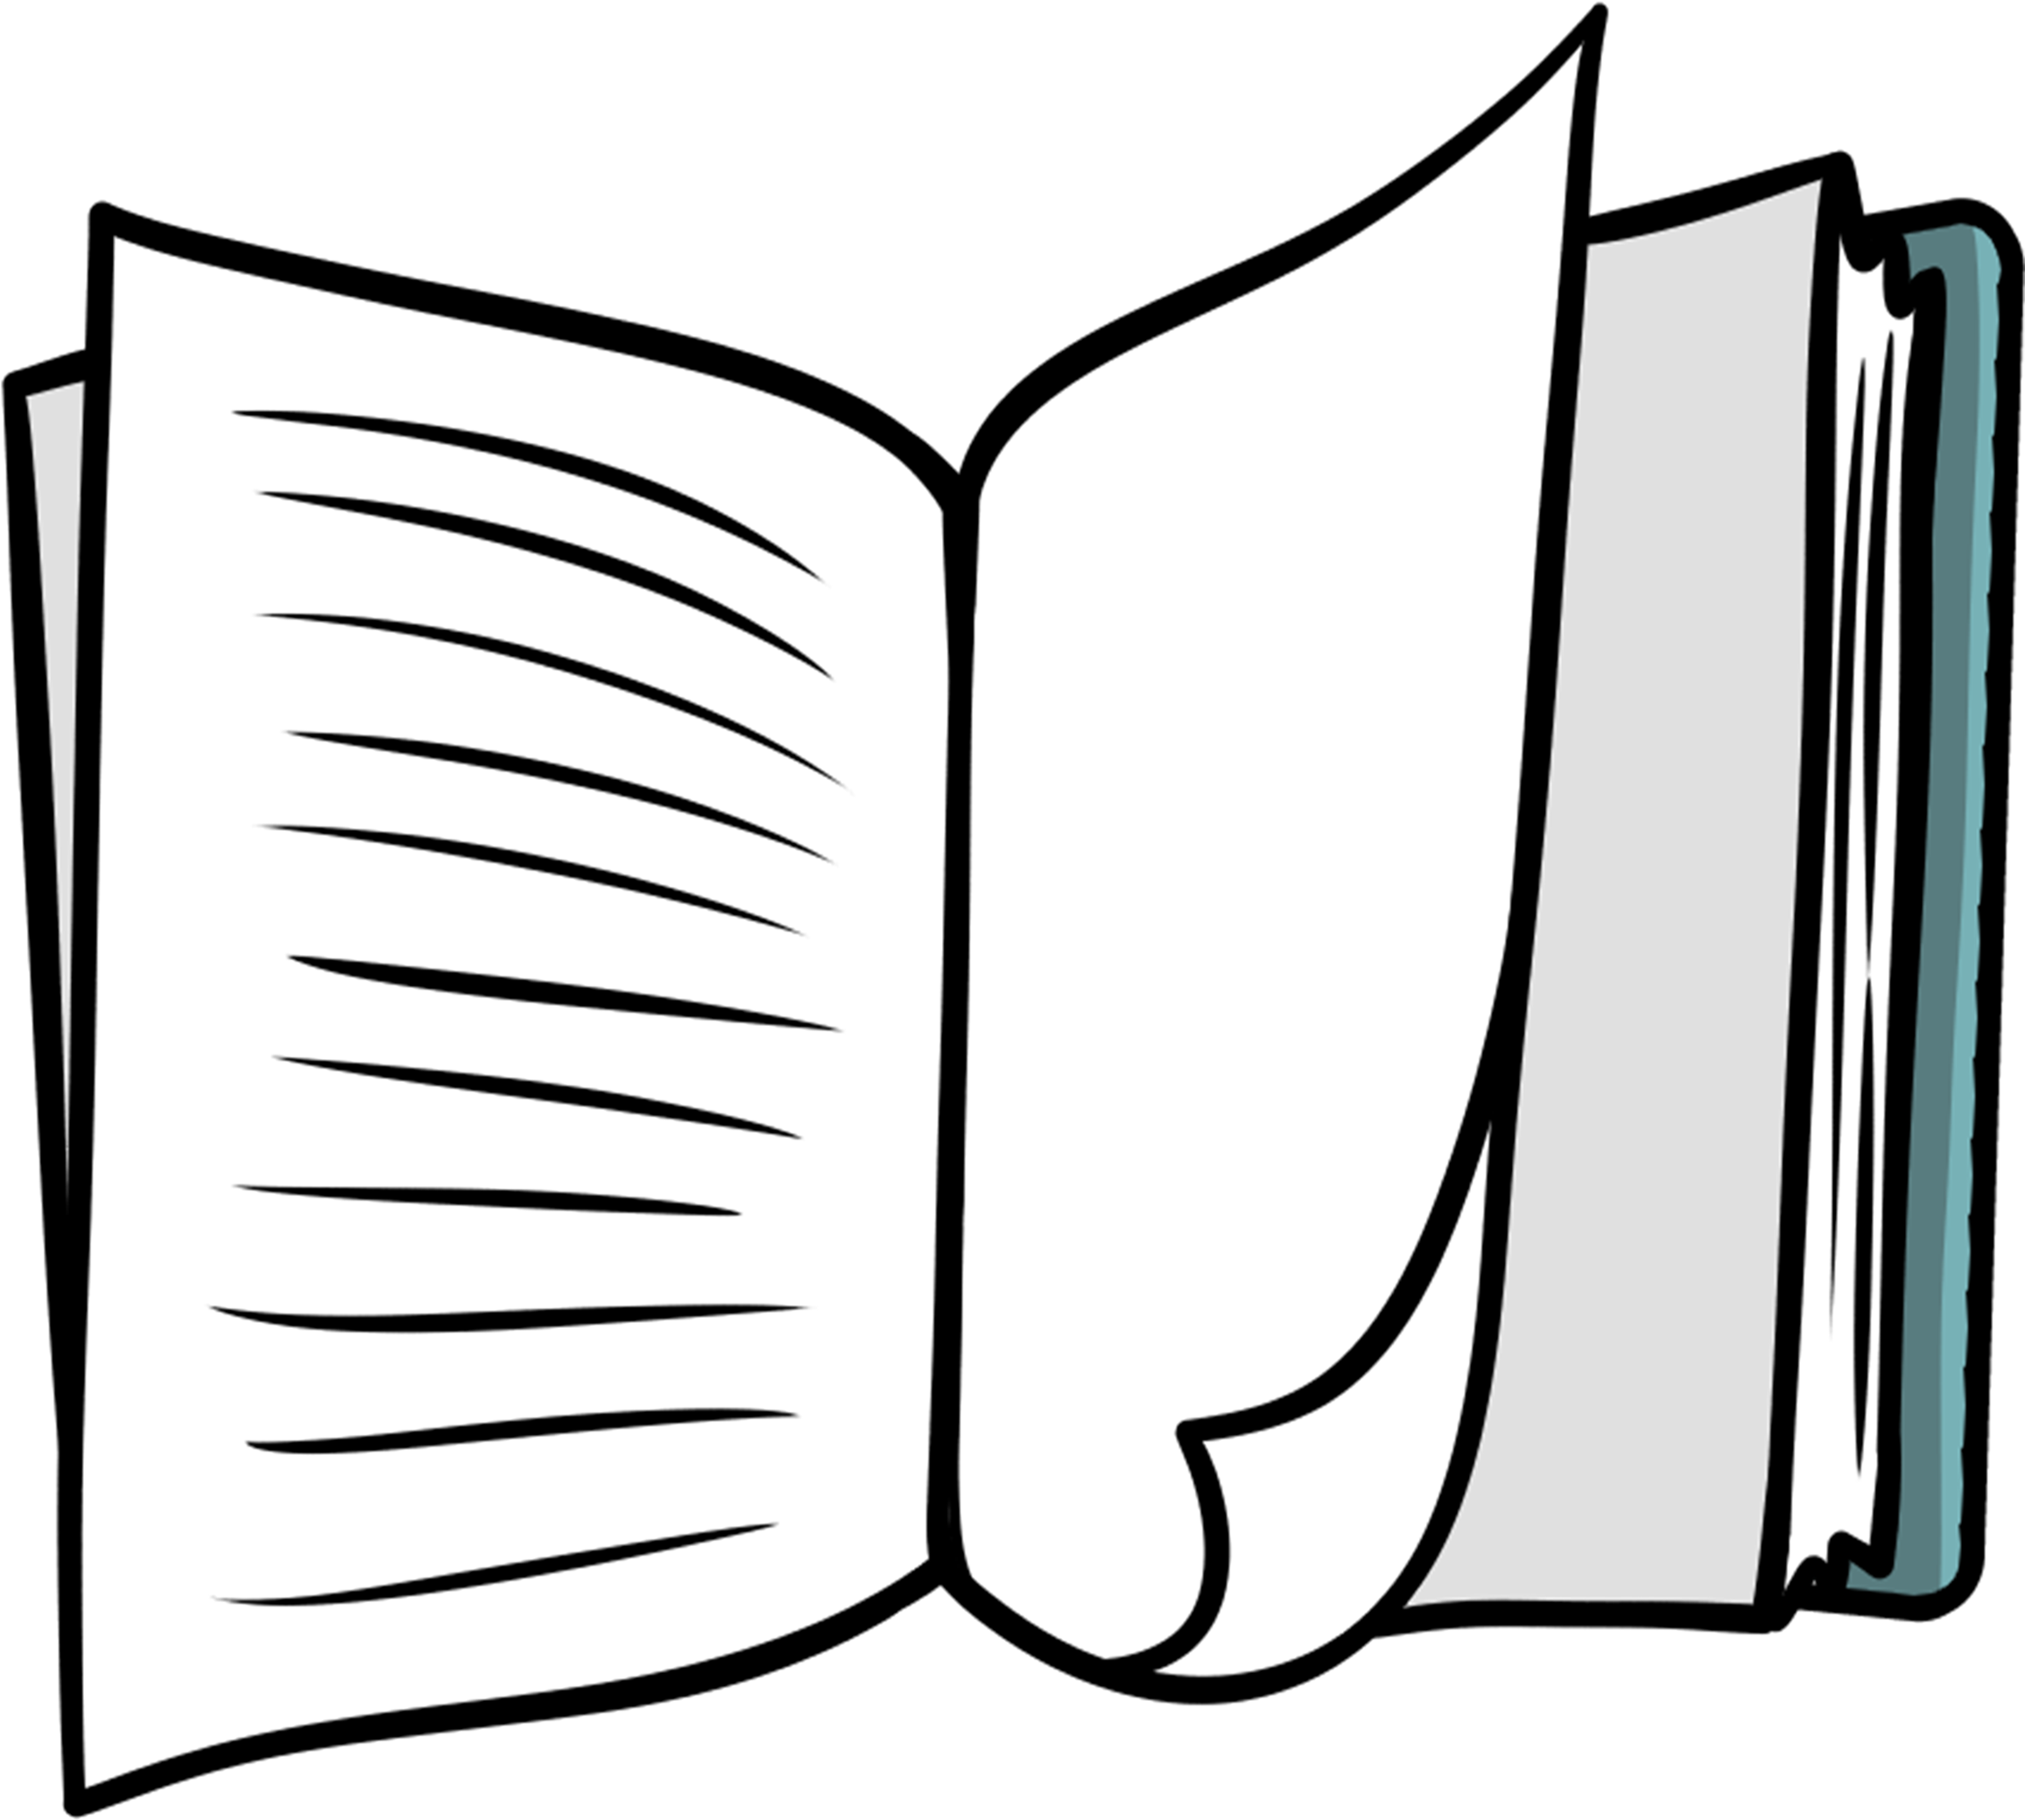 Hd free clipart transparent. Open book clip art book page